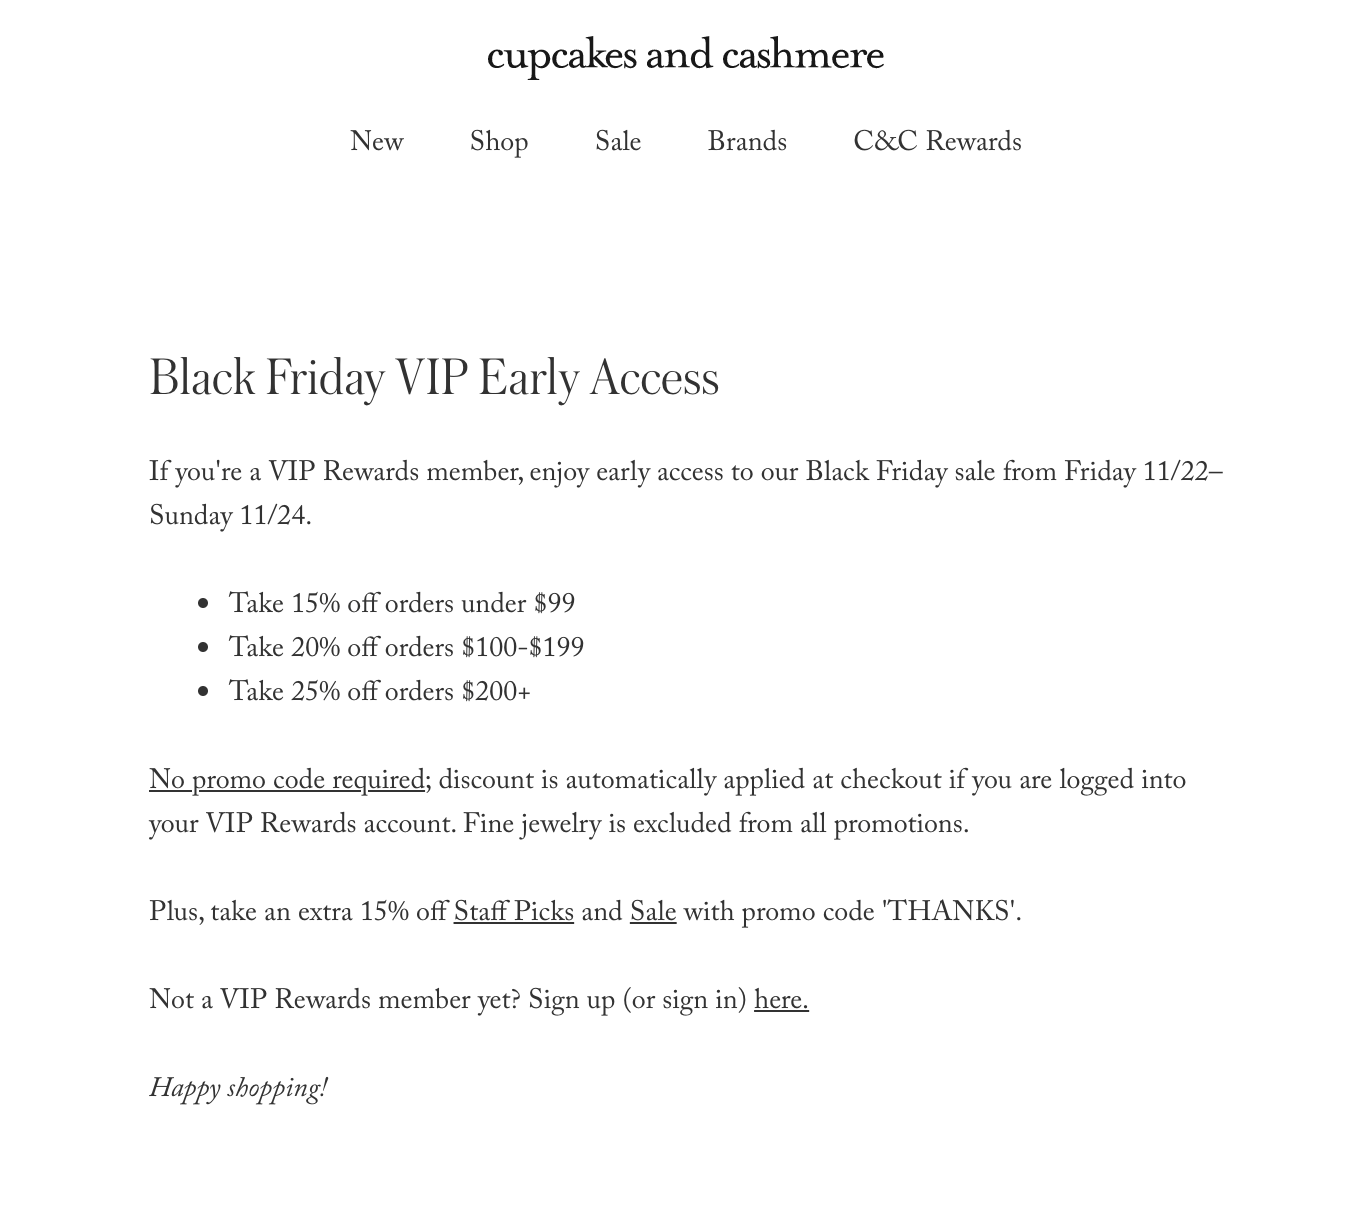 black friday VIP promotion